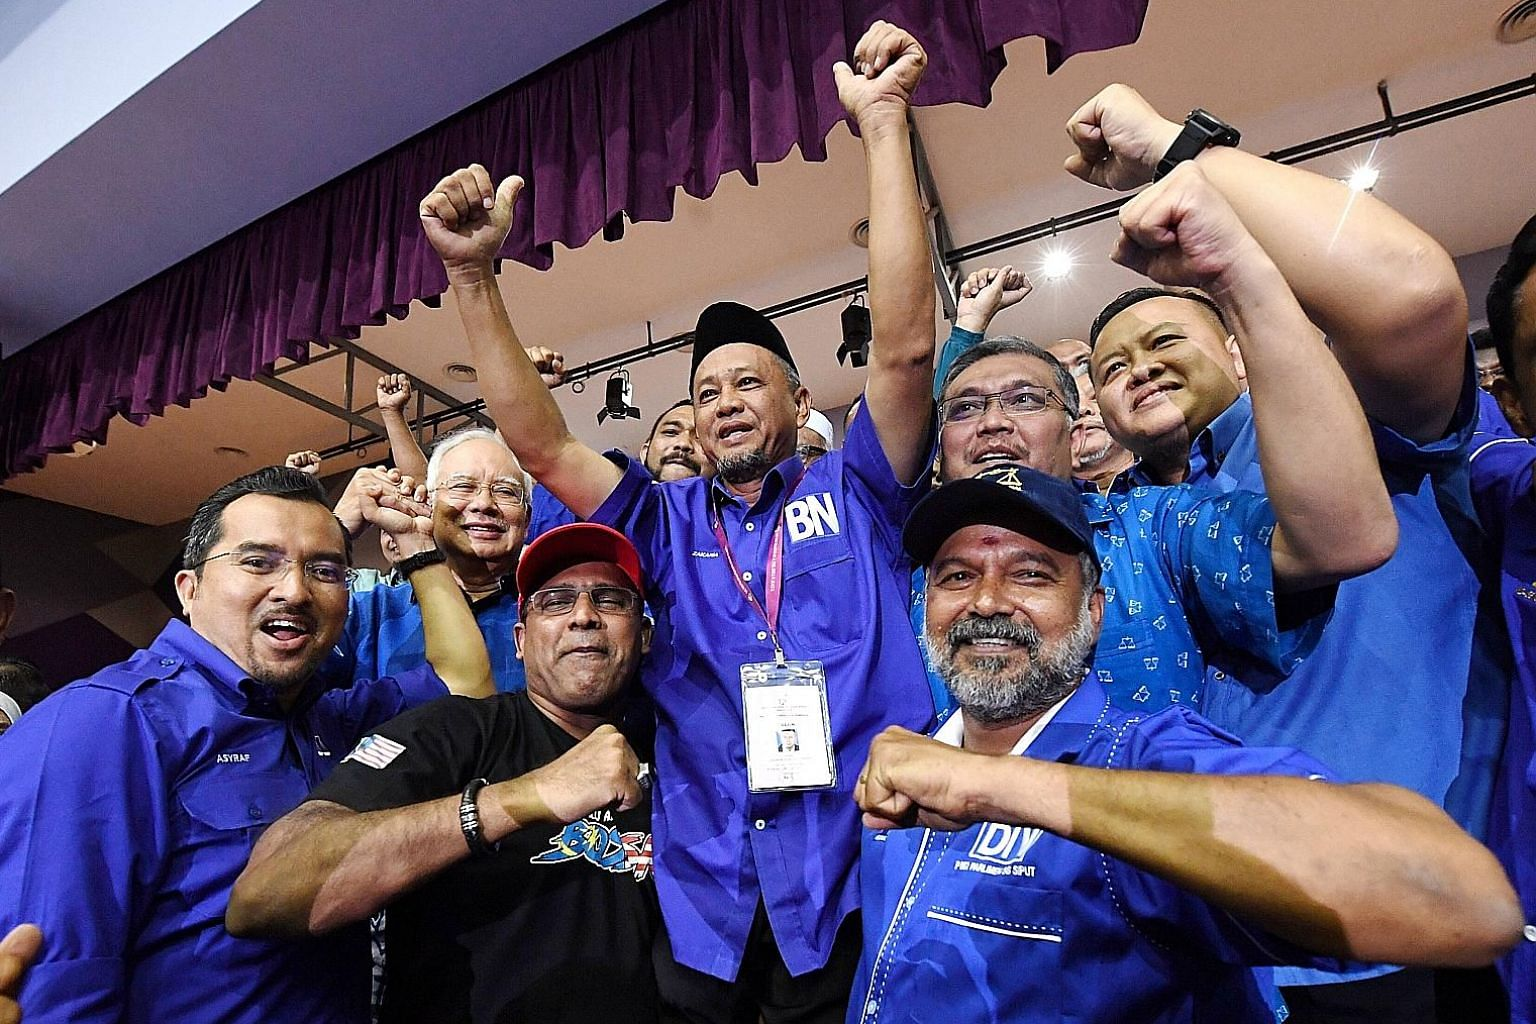 Above: BN's winning candidate, Mr Zakaria Hanafi (centre, shirt with BN logo), celebrating with former premier Najib Razak (second from left) and other party supporters yesterday. Left: PH's Mr Muhammad Aiman Zainali, who lost, casting his vote yeste